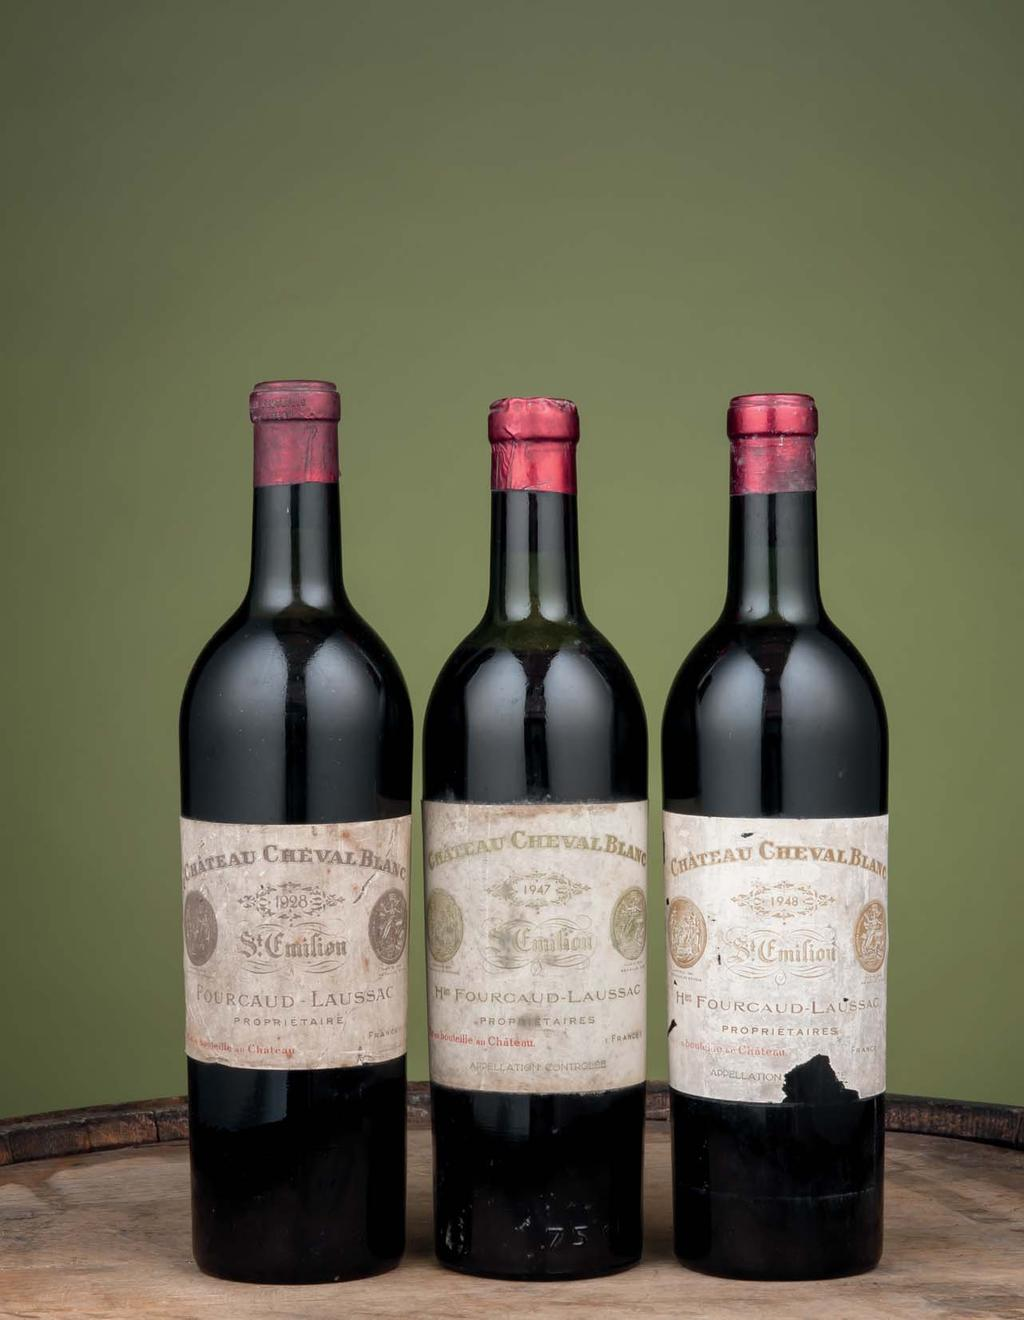 FRIDAY, OCTOBER 30, 2015 A CELEBRATION OF BORDEAUX Including Wines Directly From: CHATEAU LEOVILLE LAS CASES CHATEAU MOUTON ROTHSCHILD